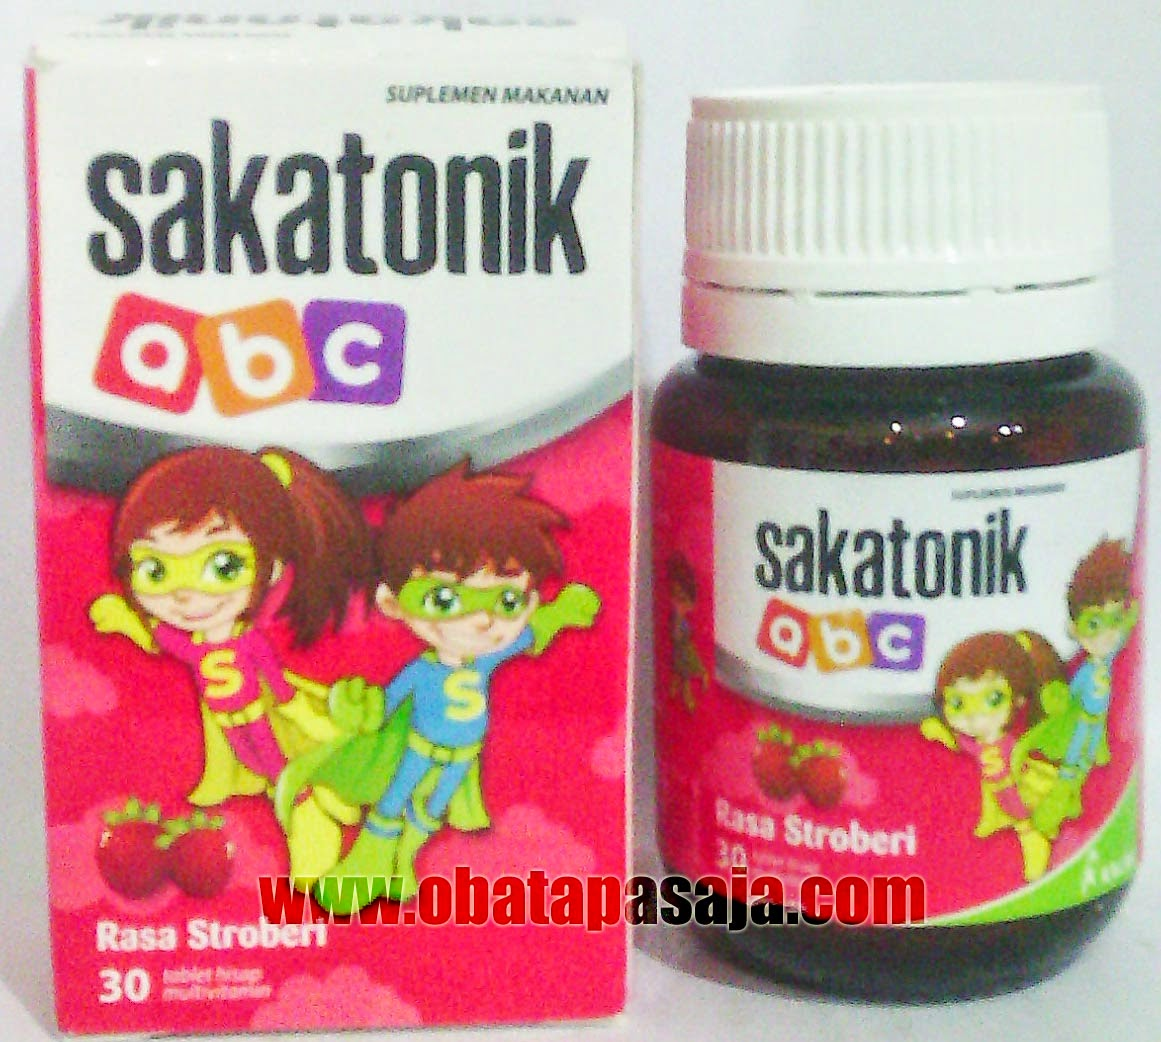 Harga dan Komposisi Sakatonik ABC Rasa Strawberry